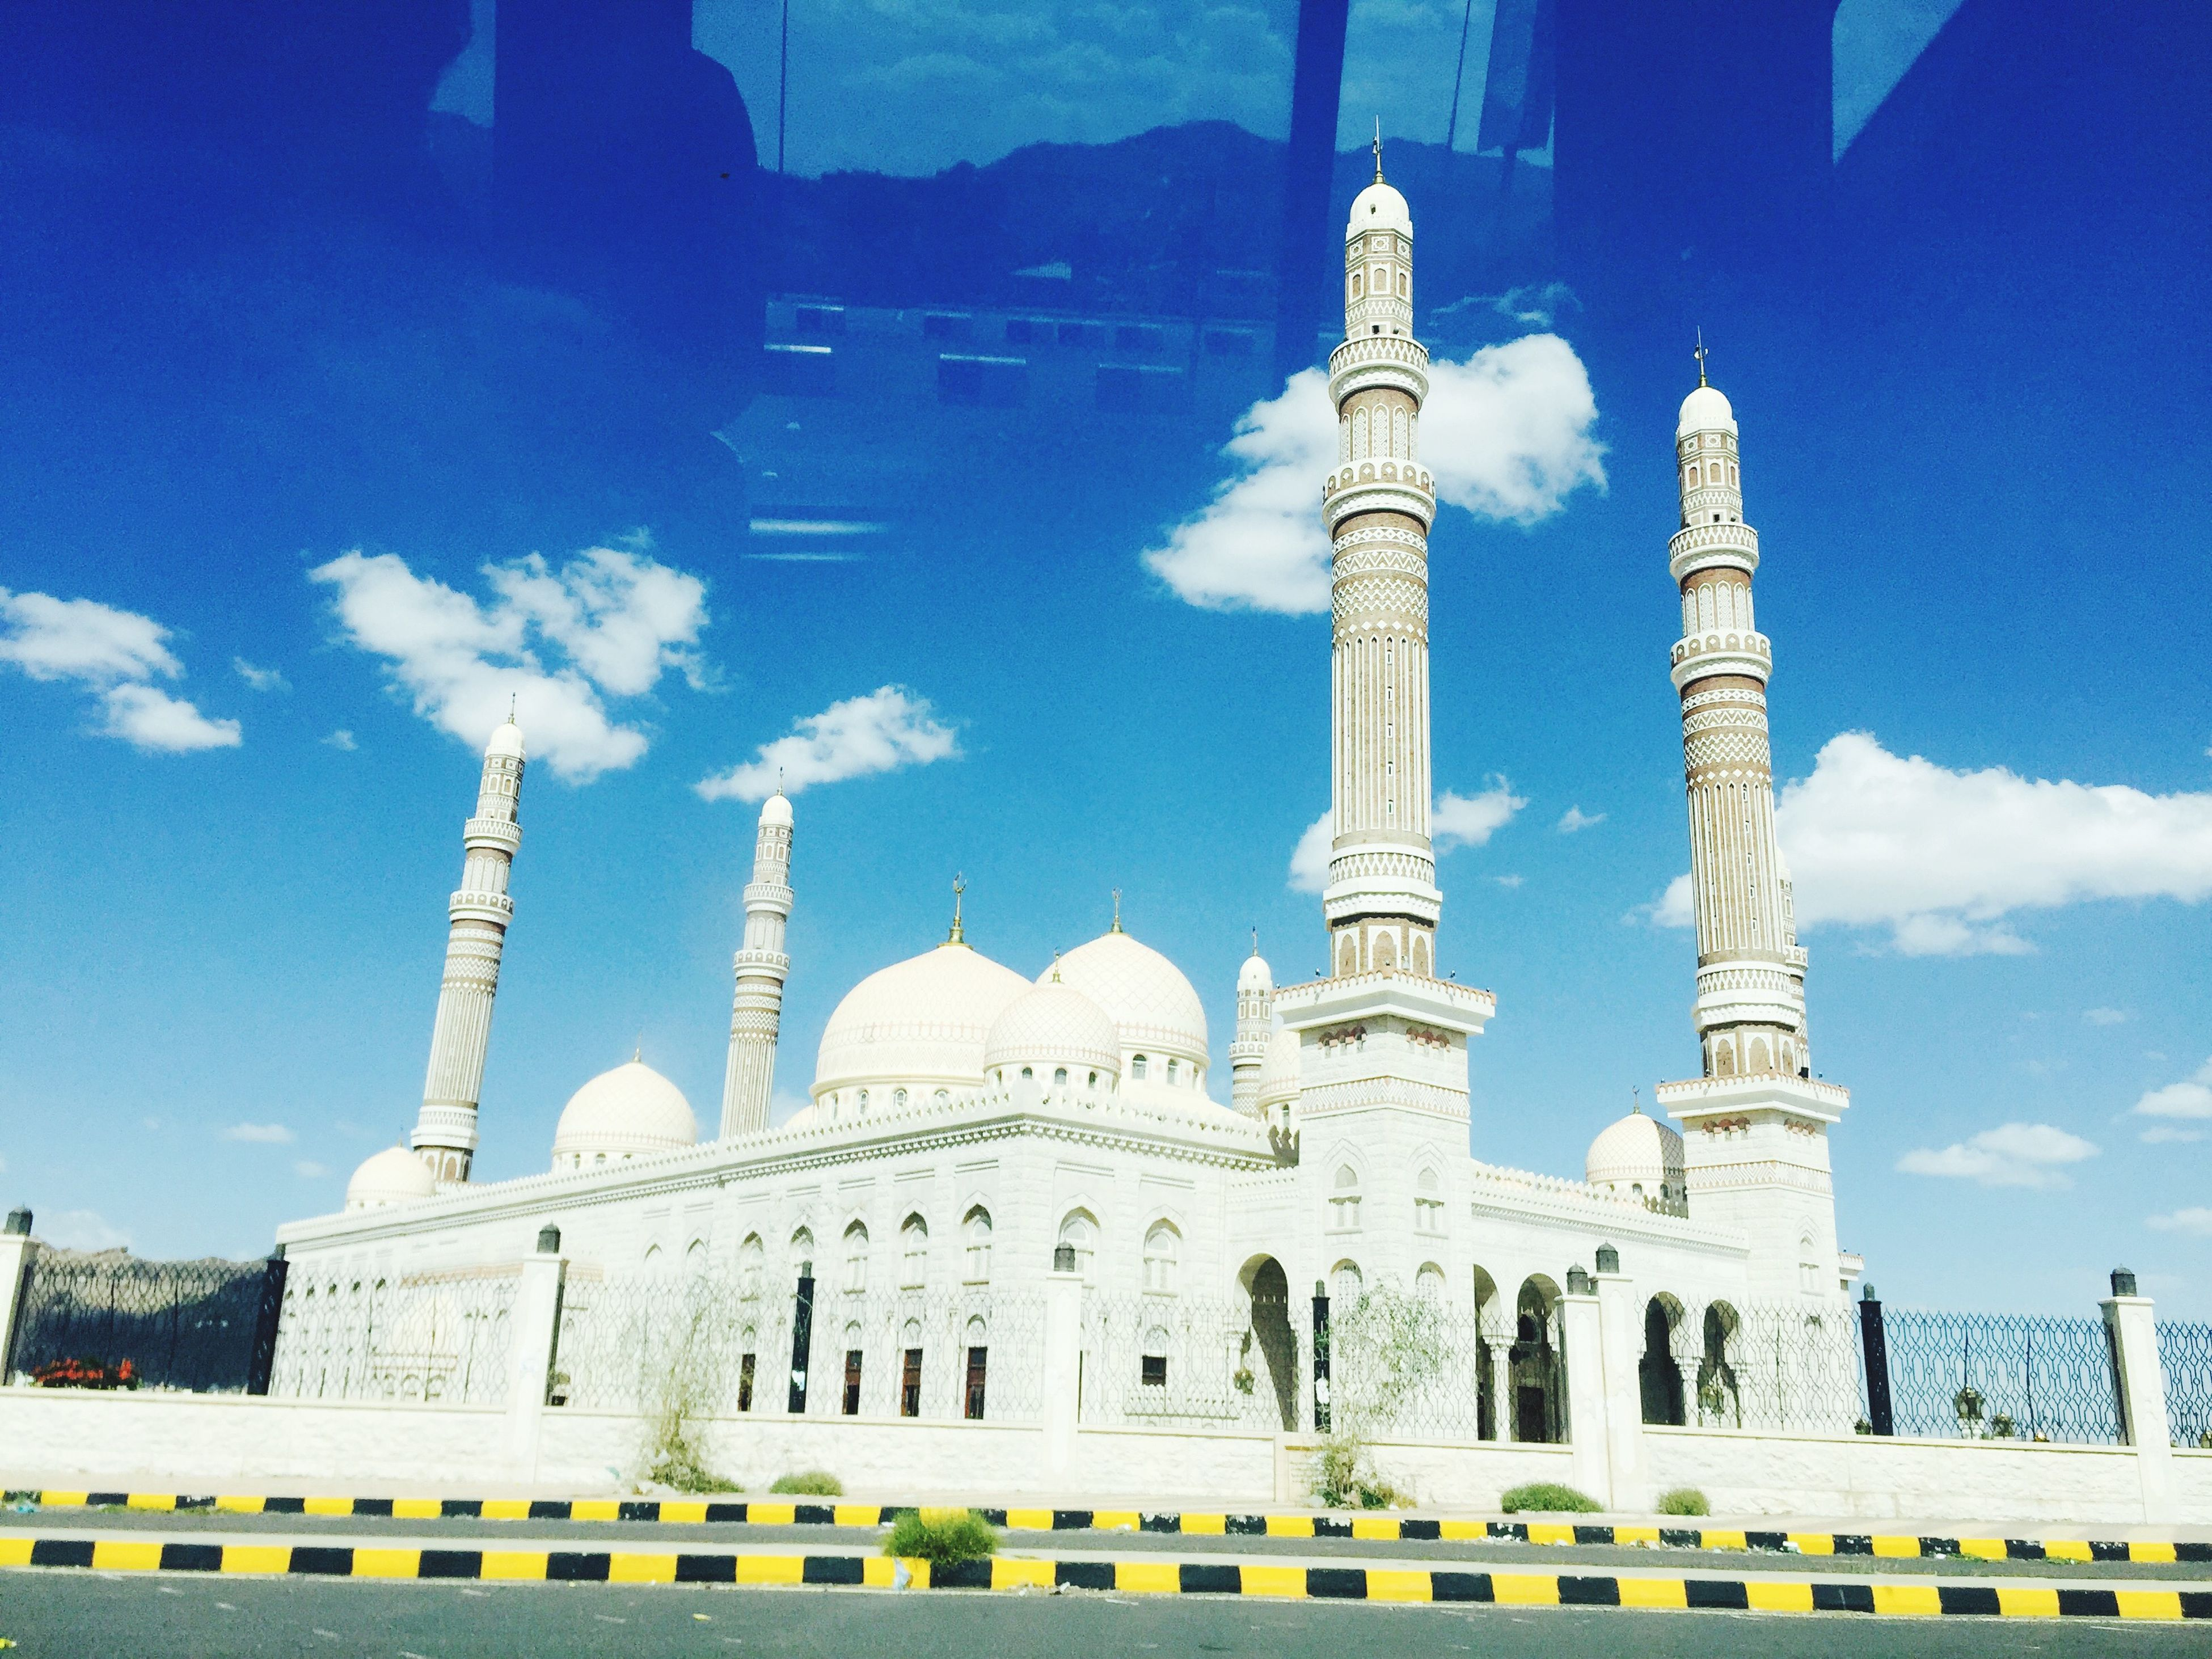 architecture, built structure, famous place, building exterior, travel destinations, international landmark, tourism, blue, travel, capital cities, low angle view, sky, city, history, architectural column, tower, architectural feature, tall - high, mosque, place of worship